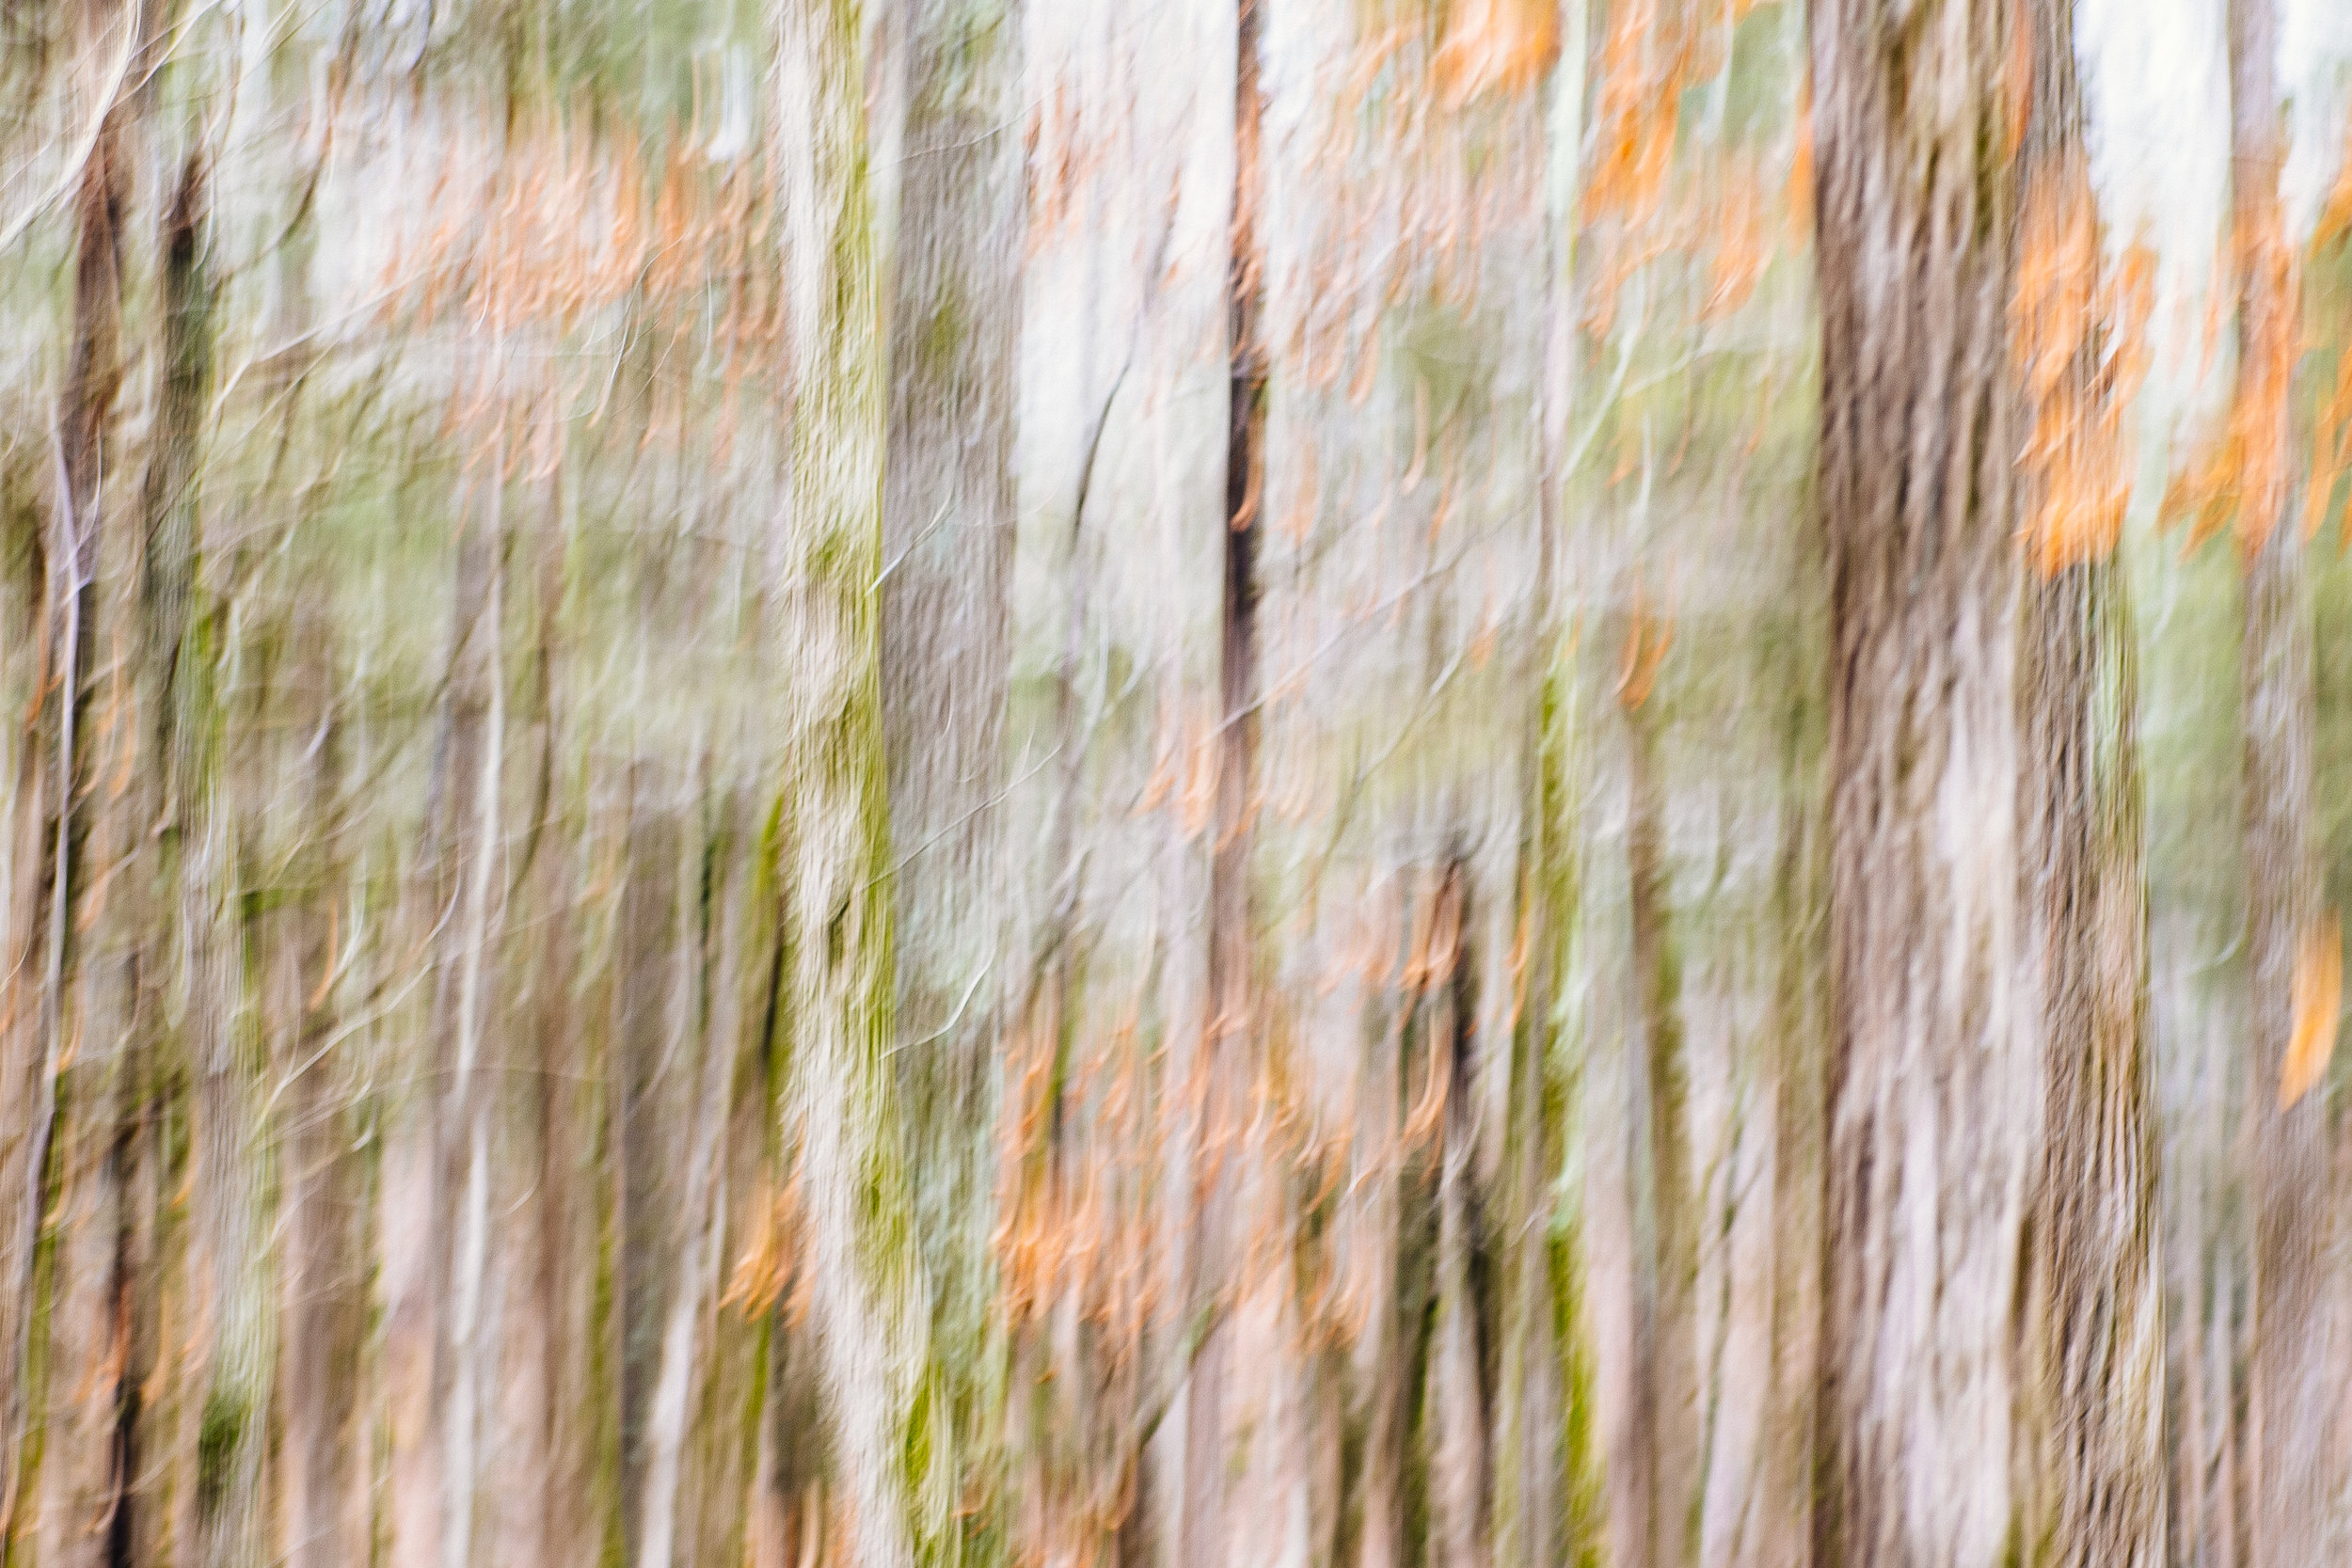 """ICM"" or Intentional Camera Movement, taken at Devil's Den State Park"